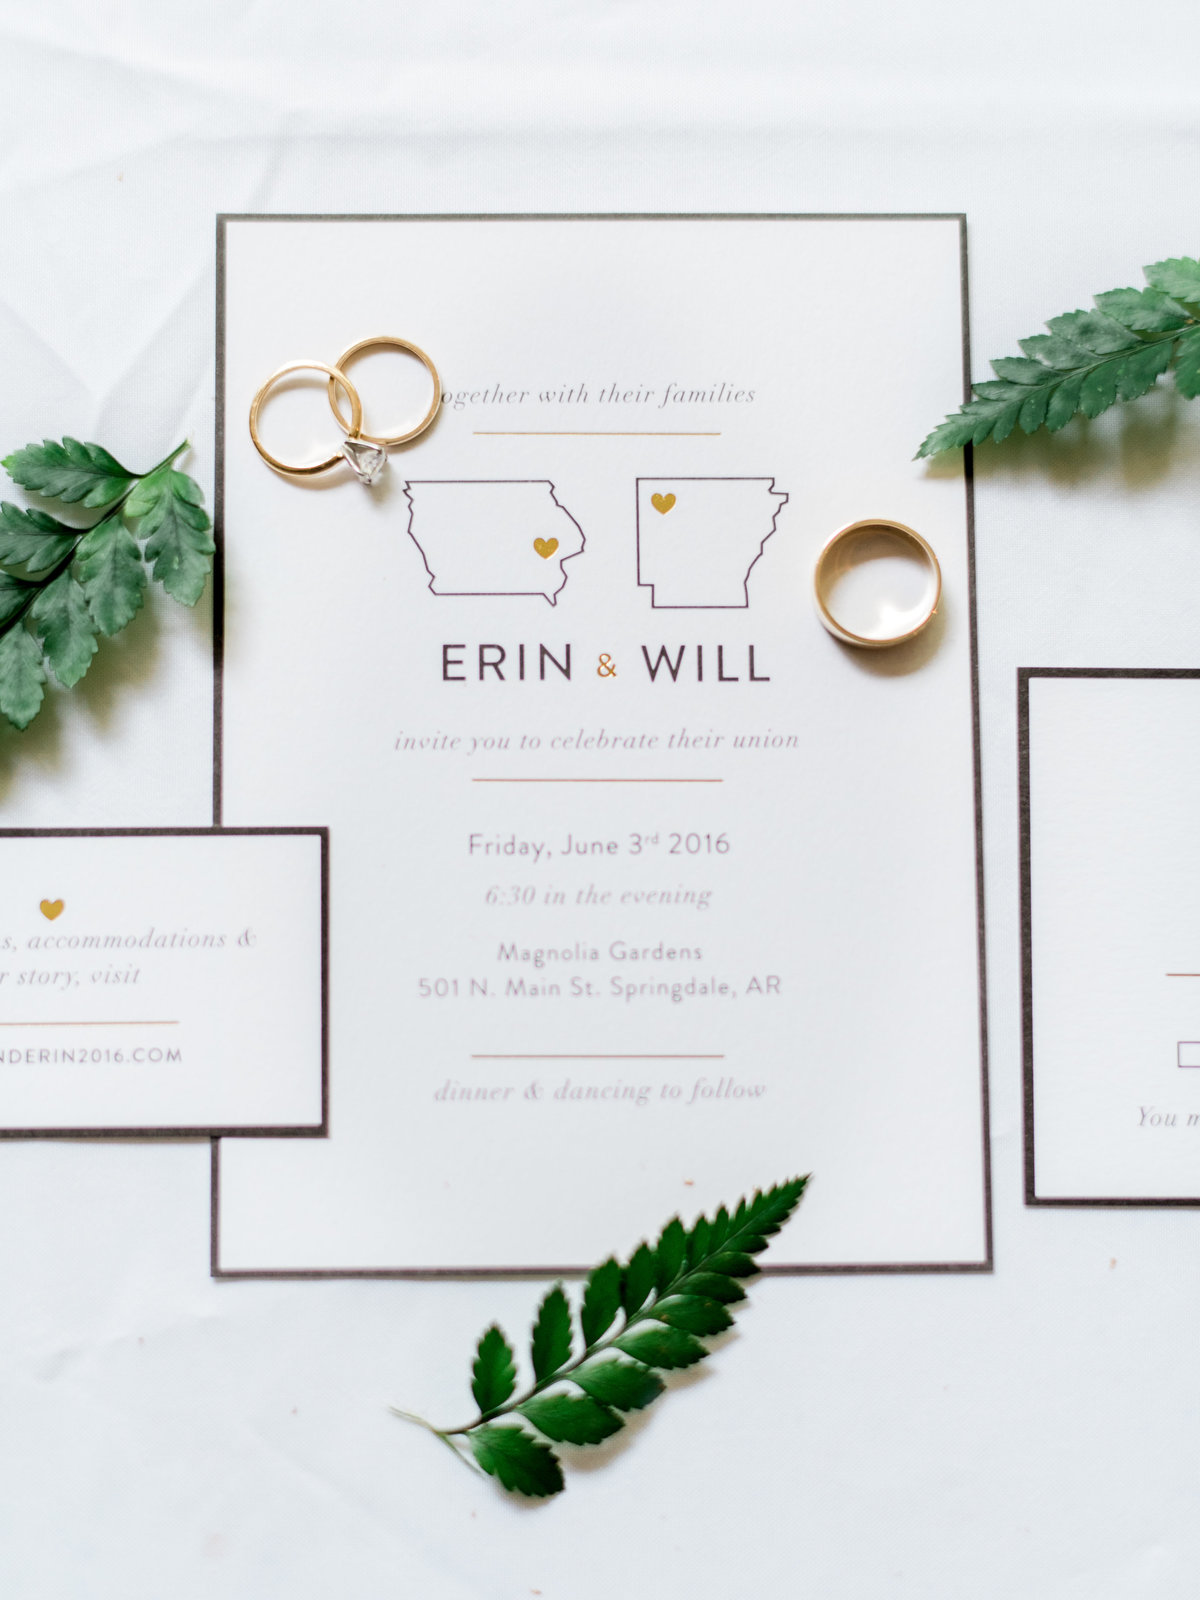 ErinWill_wedding-007